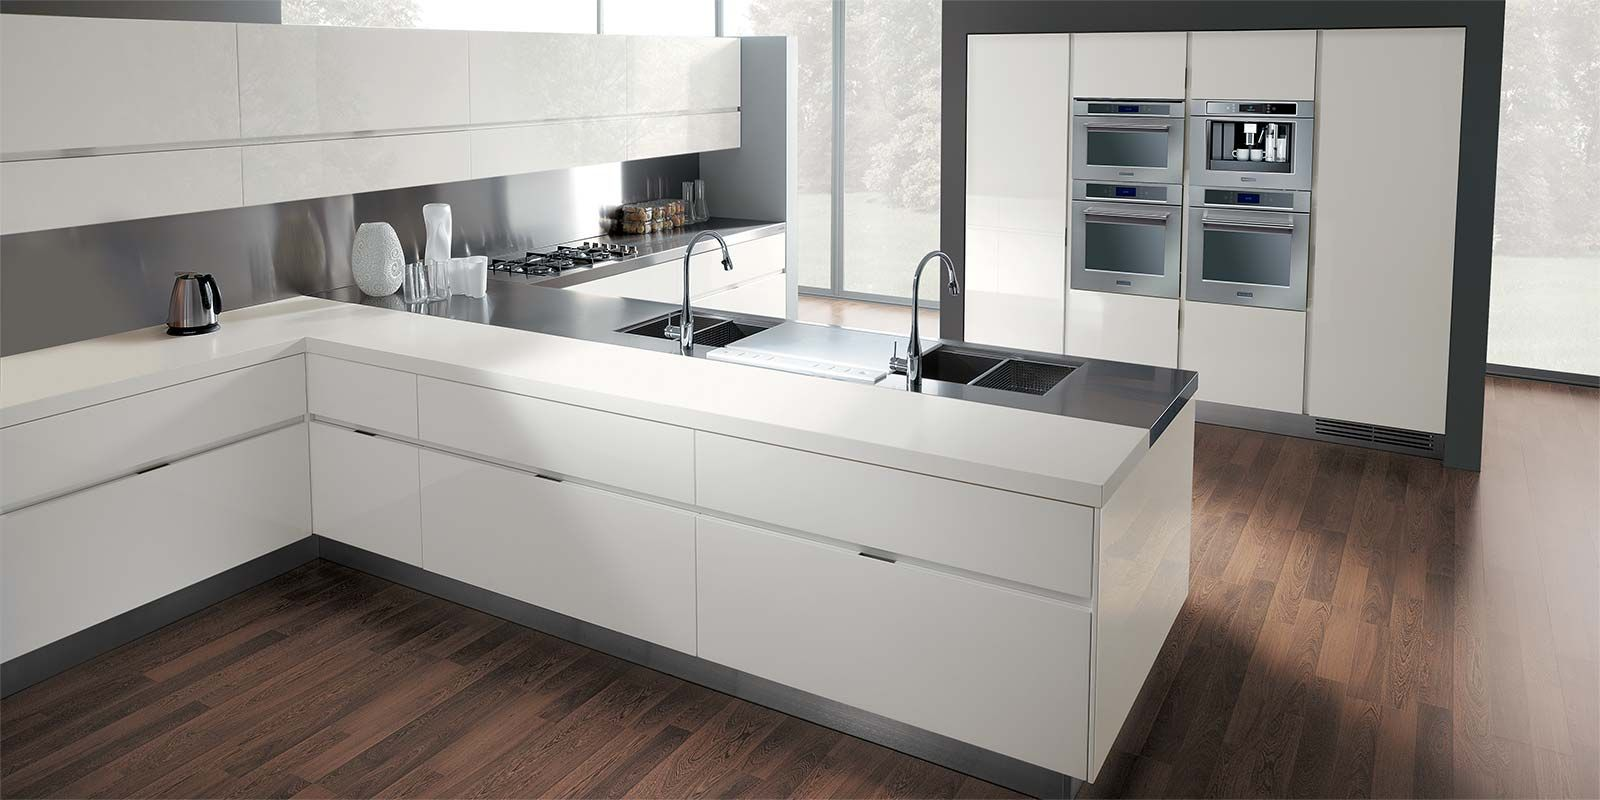 Italian Modern Design Kitchens - Elektra by Ernestomeda | COZINHAS ...